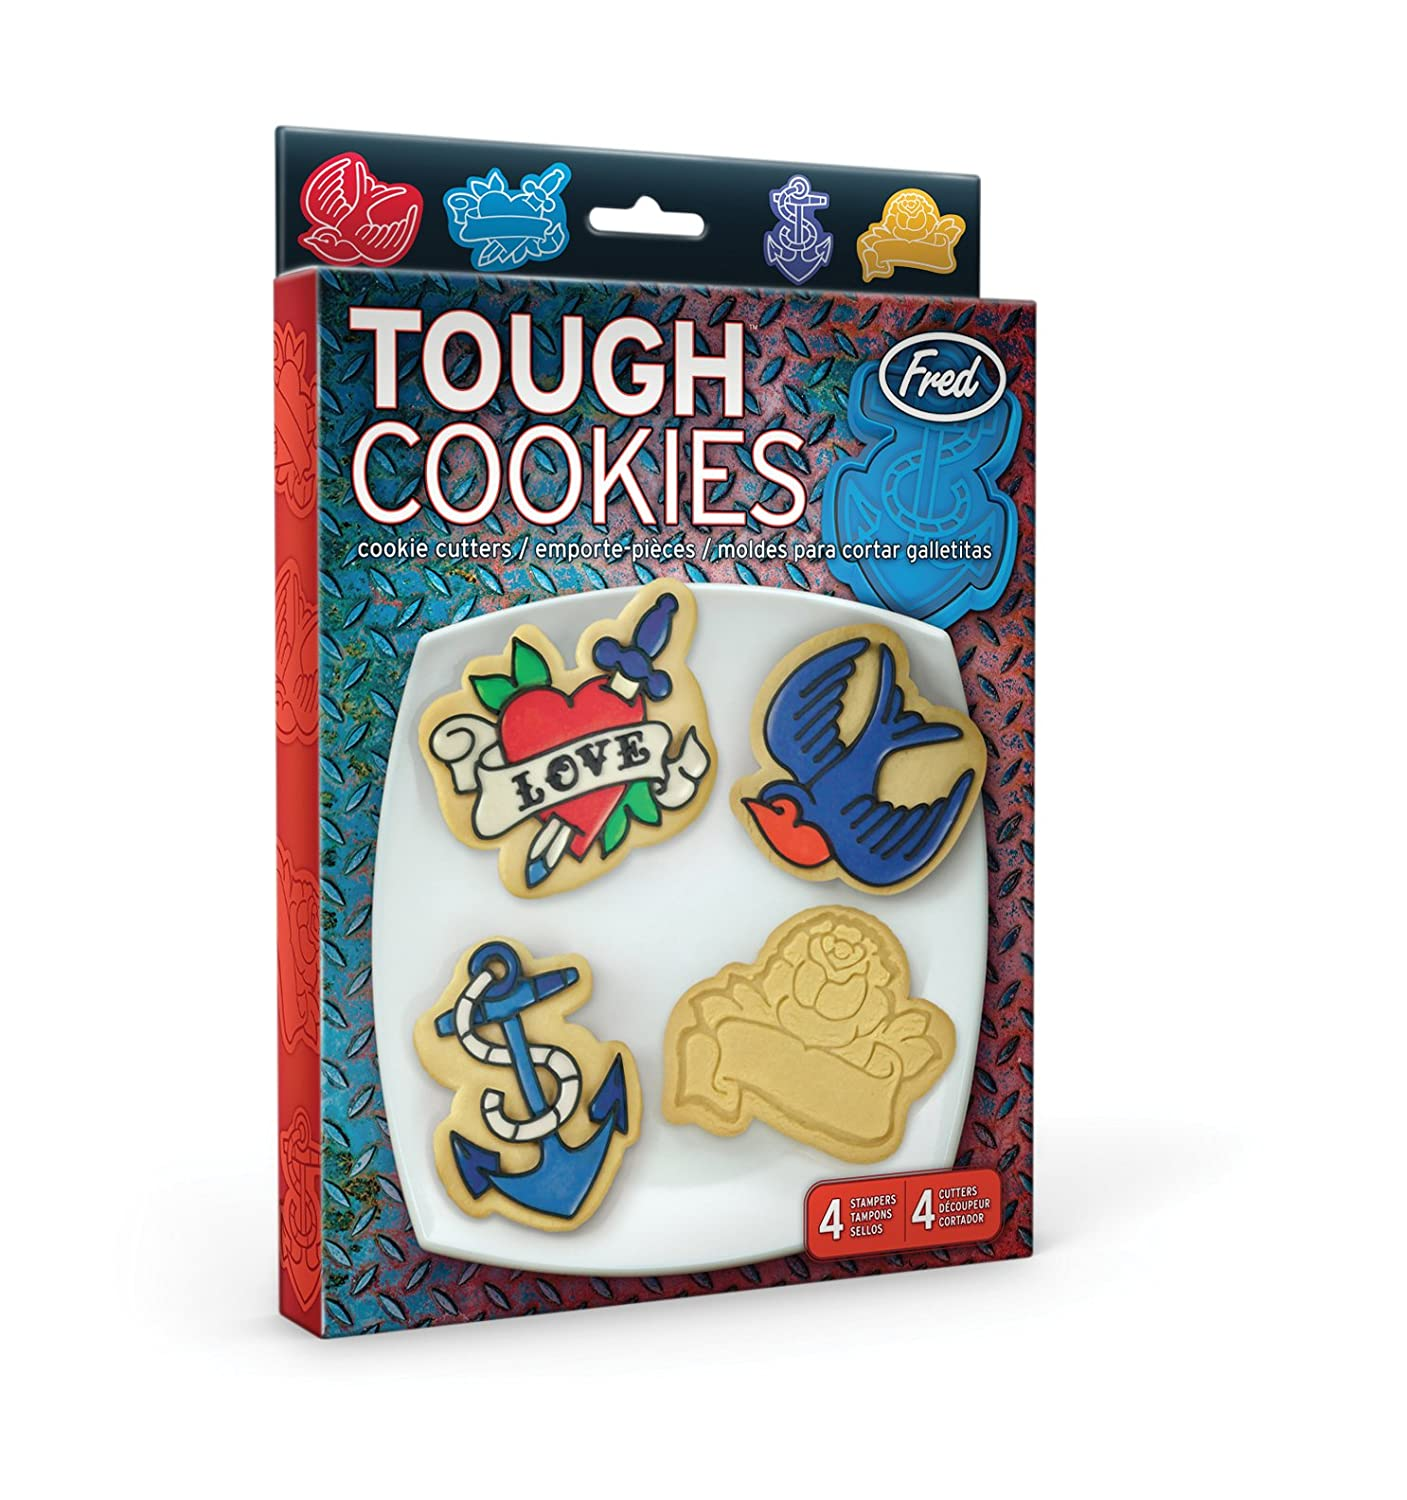 fred tough tattoo biscuit cutters